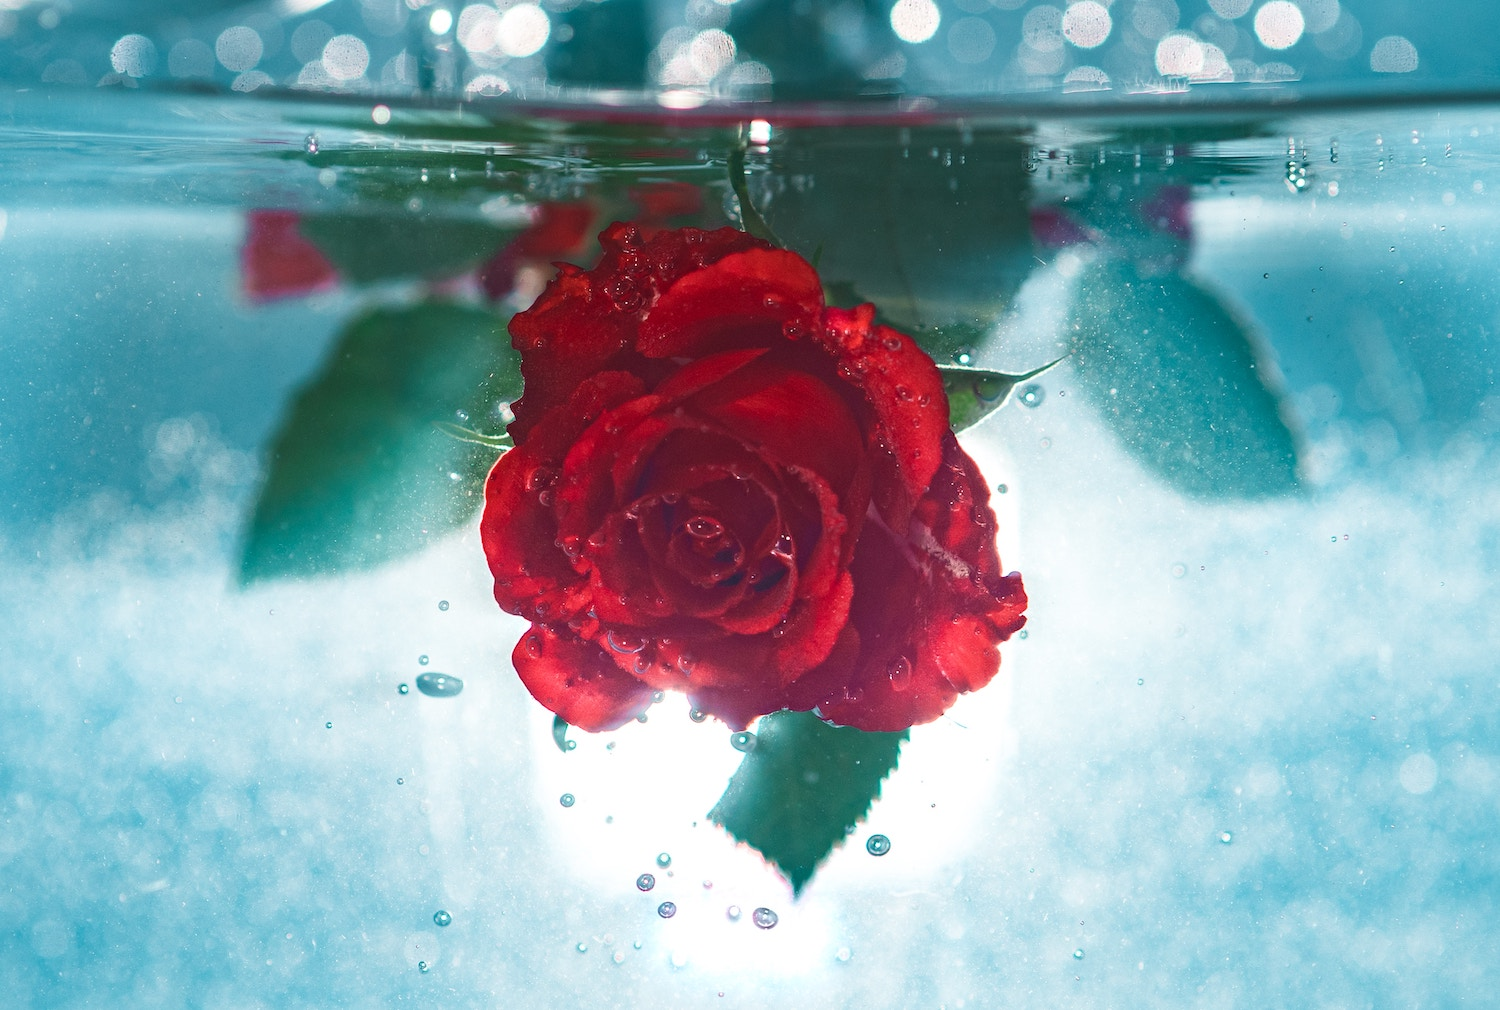 drowning rose.jpg